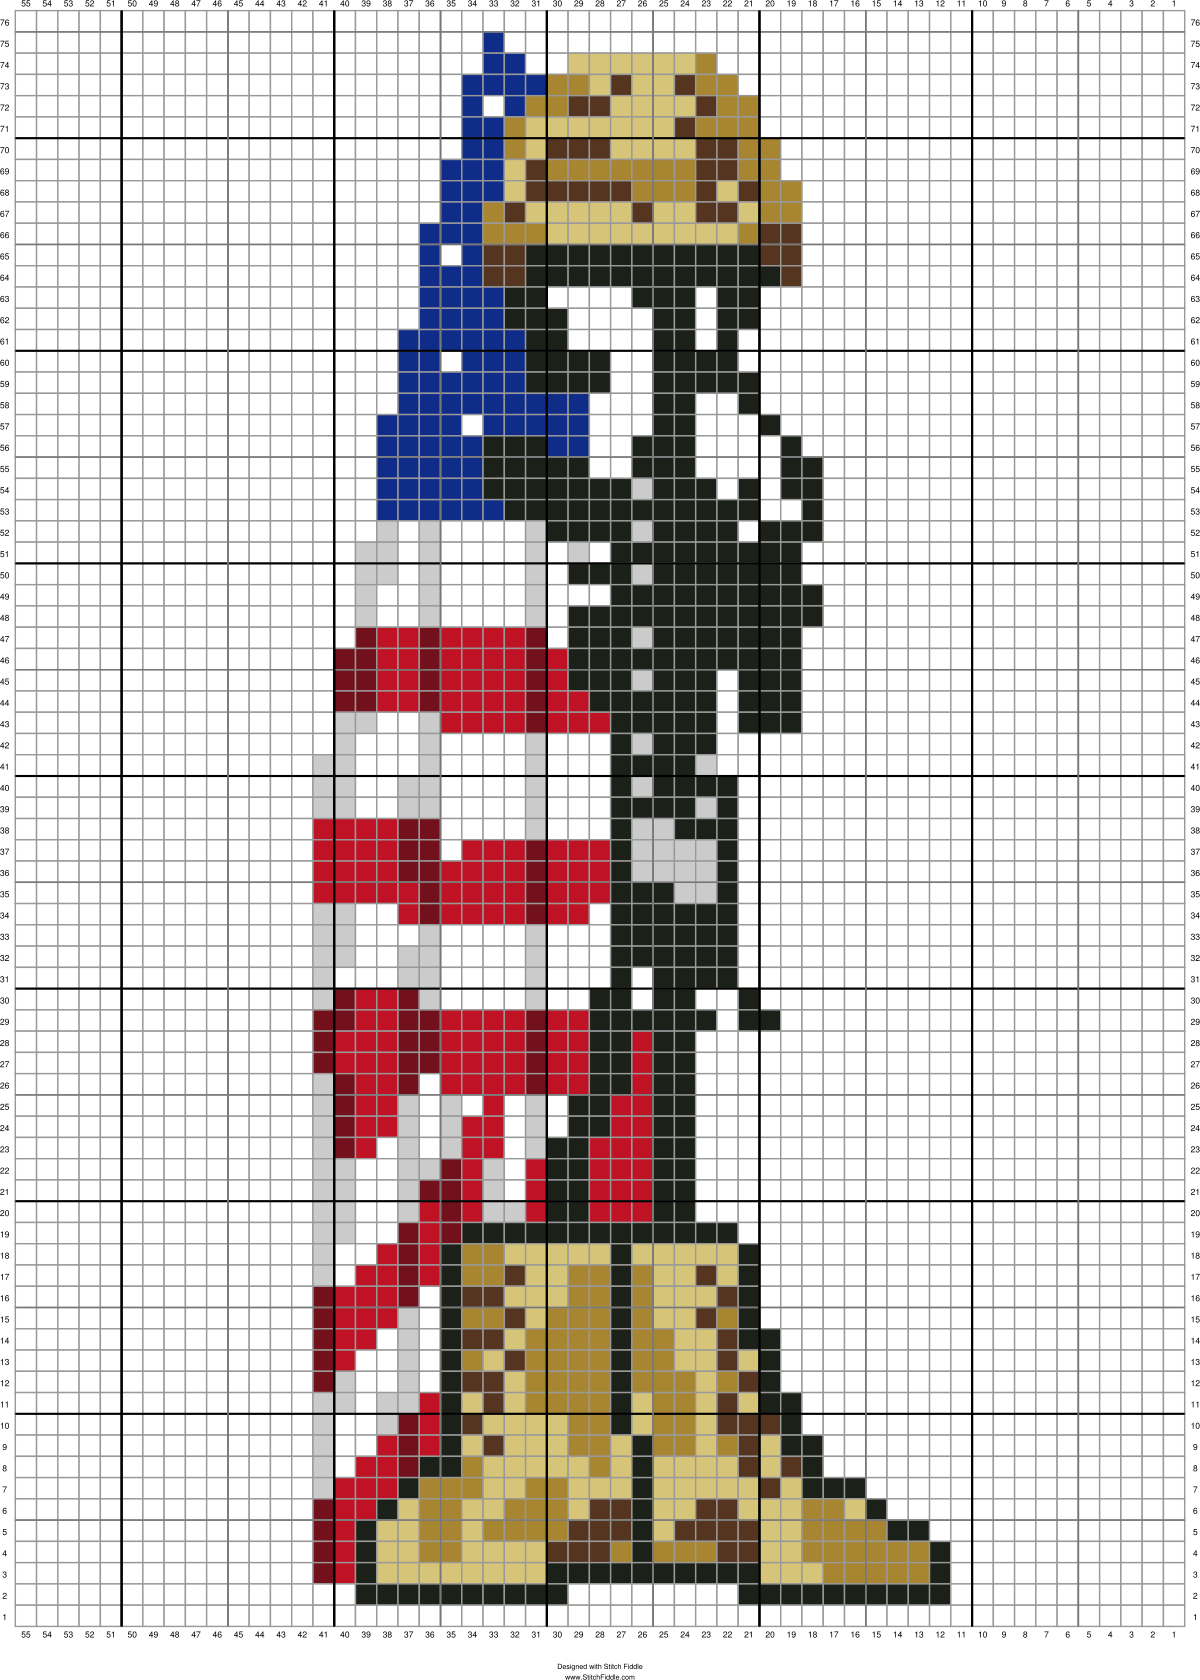 ARMY BOOTS / FLAG 76 x 55 GRAPH SQUARES | Cross-stitch and ...